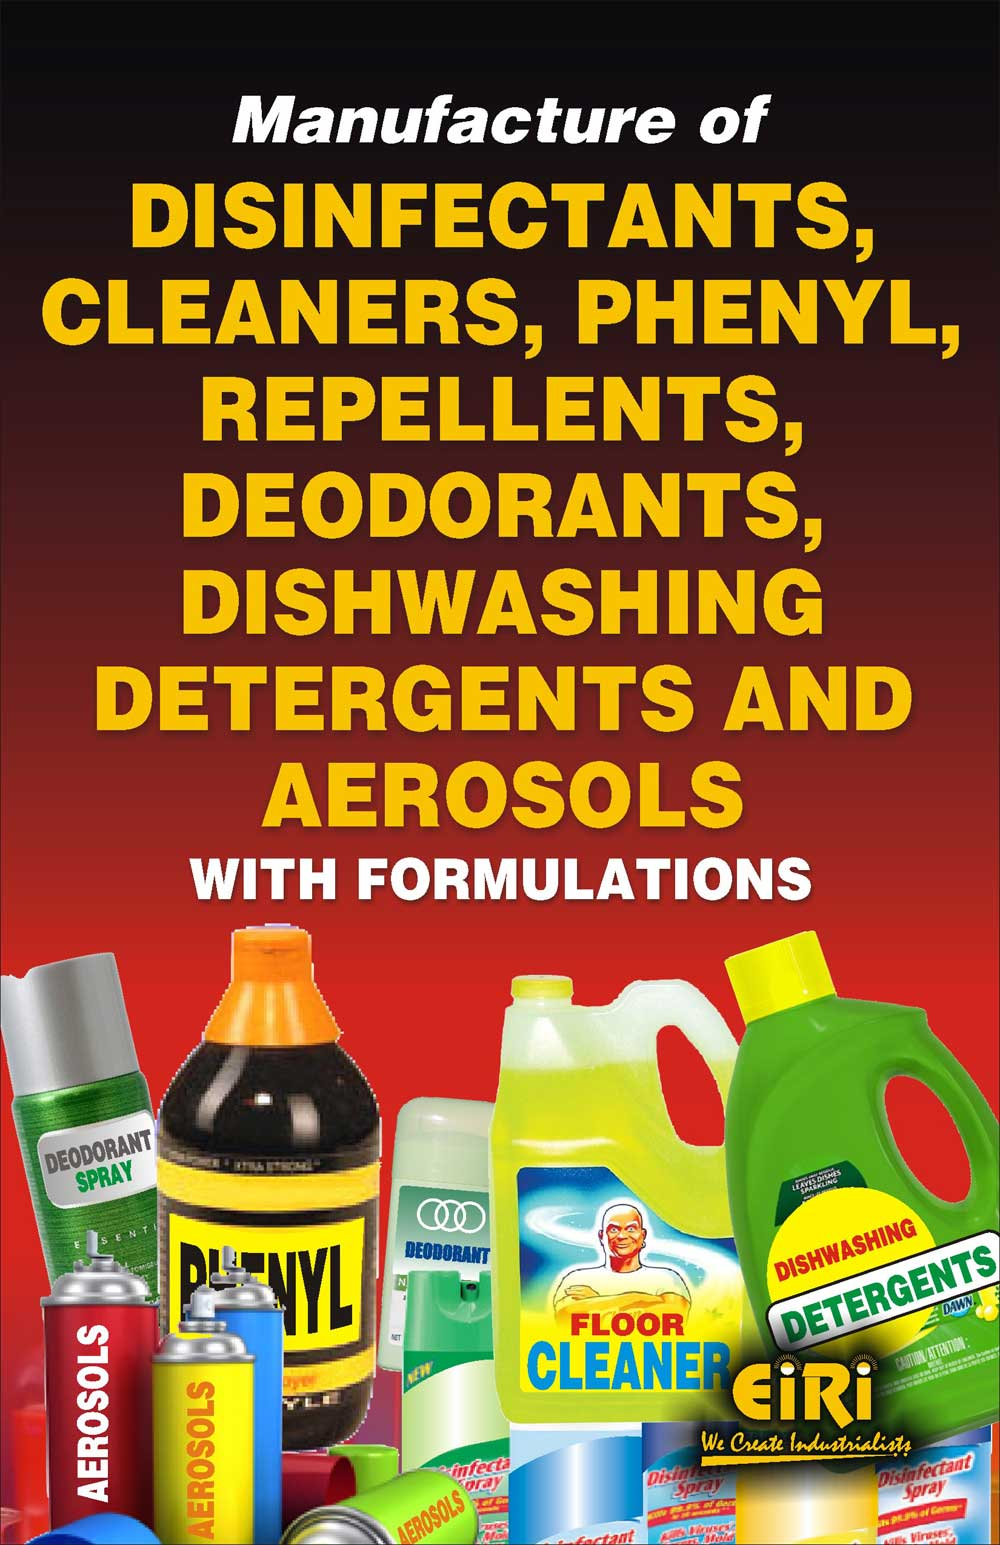 Handbook And Formulations On Disinfectants Manufacturing